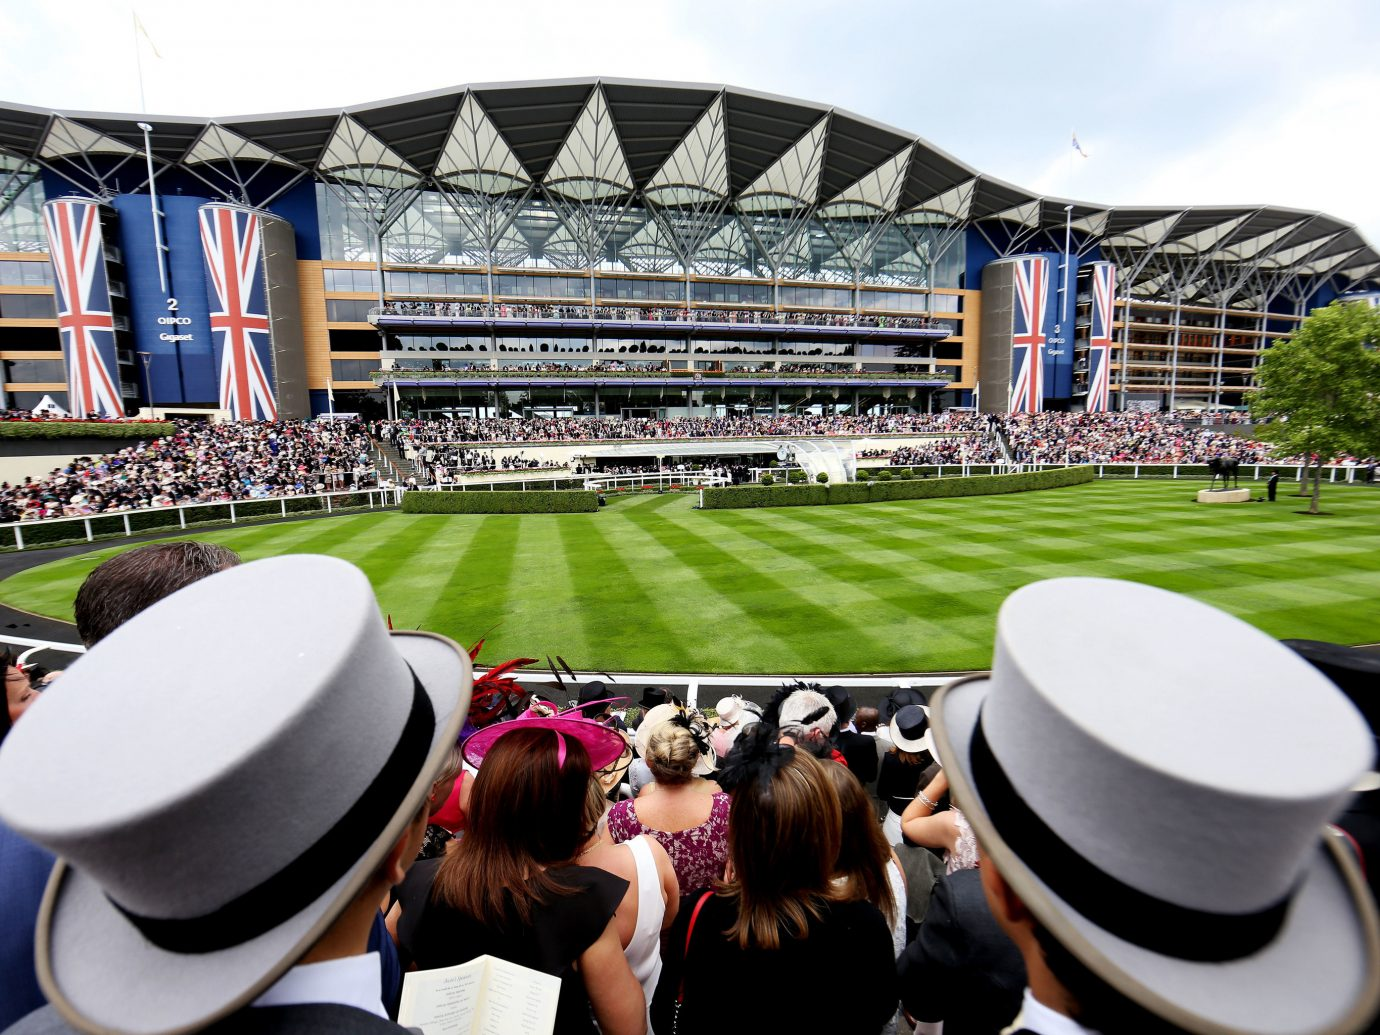 England europe London Trip Ideas sky person sport venue outdoor stadium structure crowd sports arena grass recreation soccer specific stadium multi sport event competition event meal